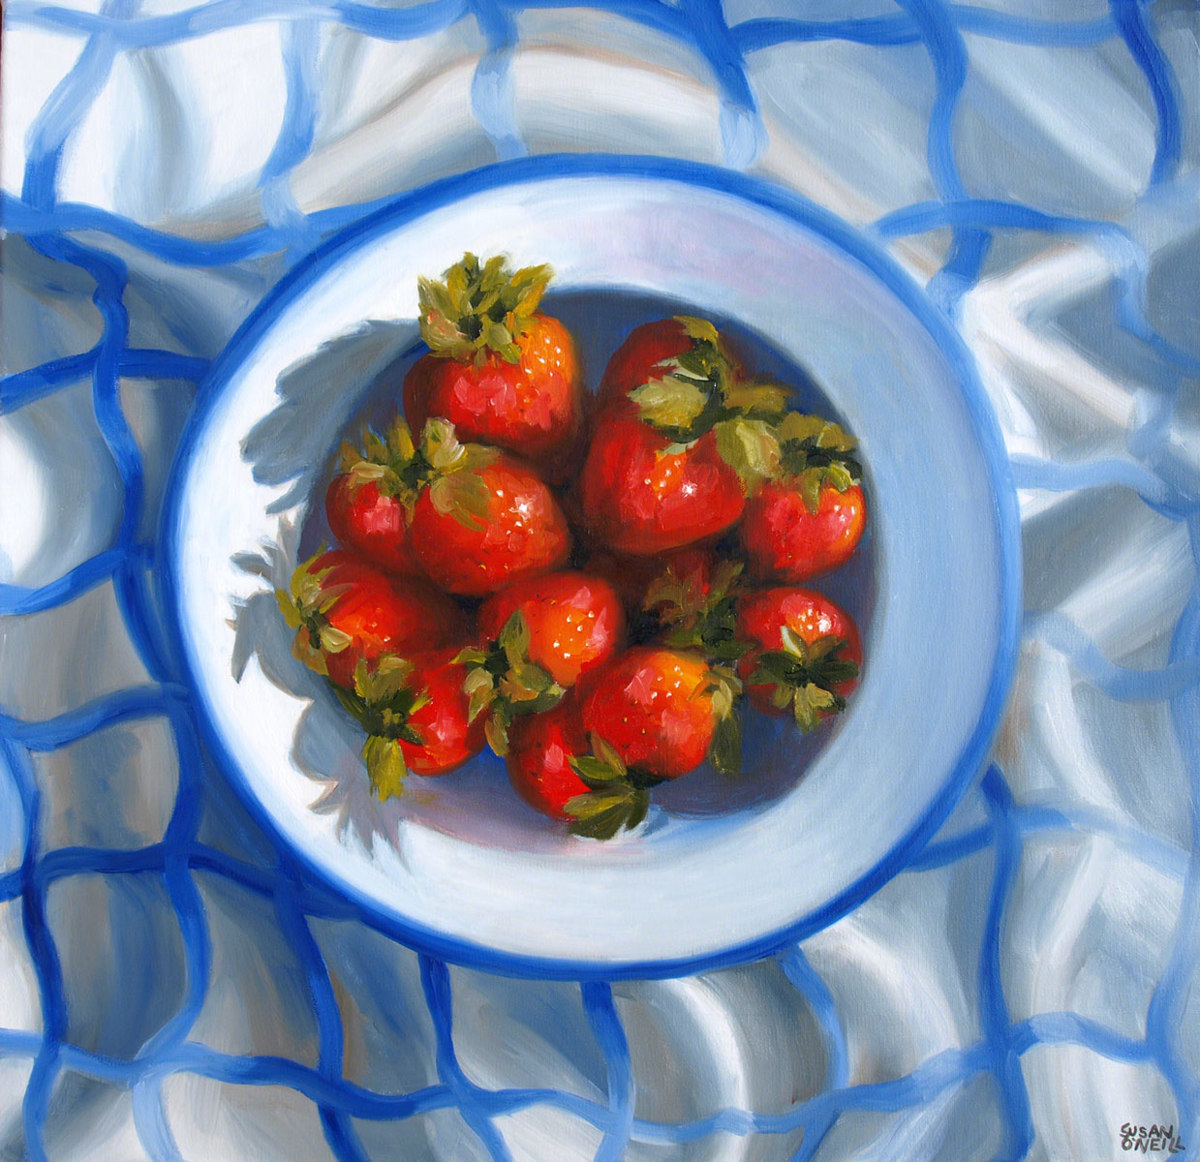 strawberries in a bowl (large view)